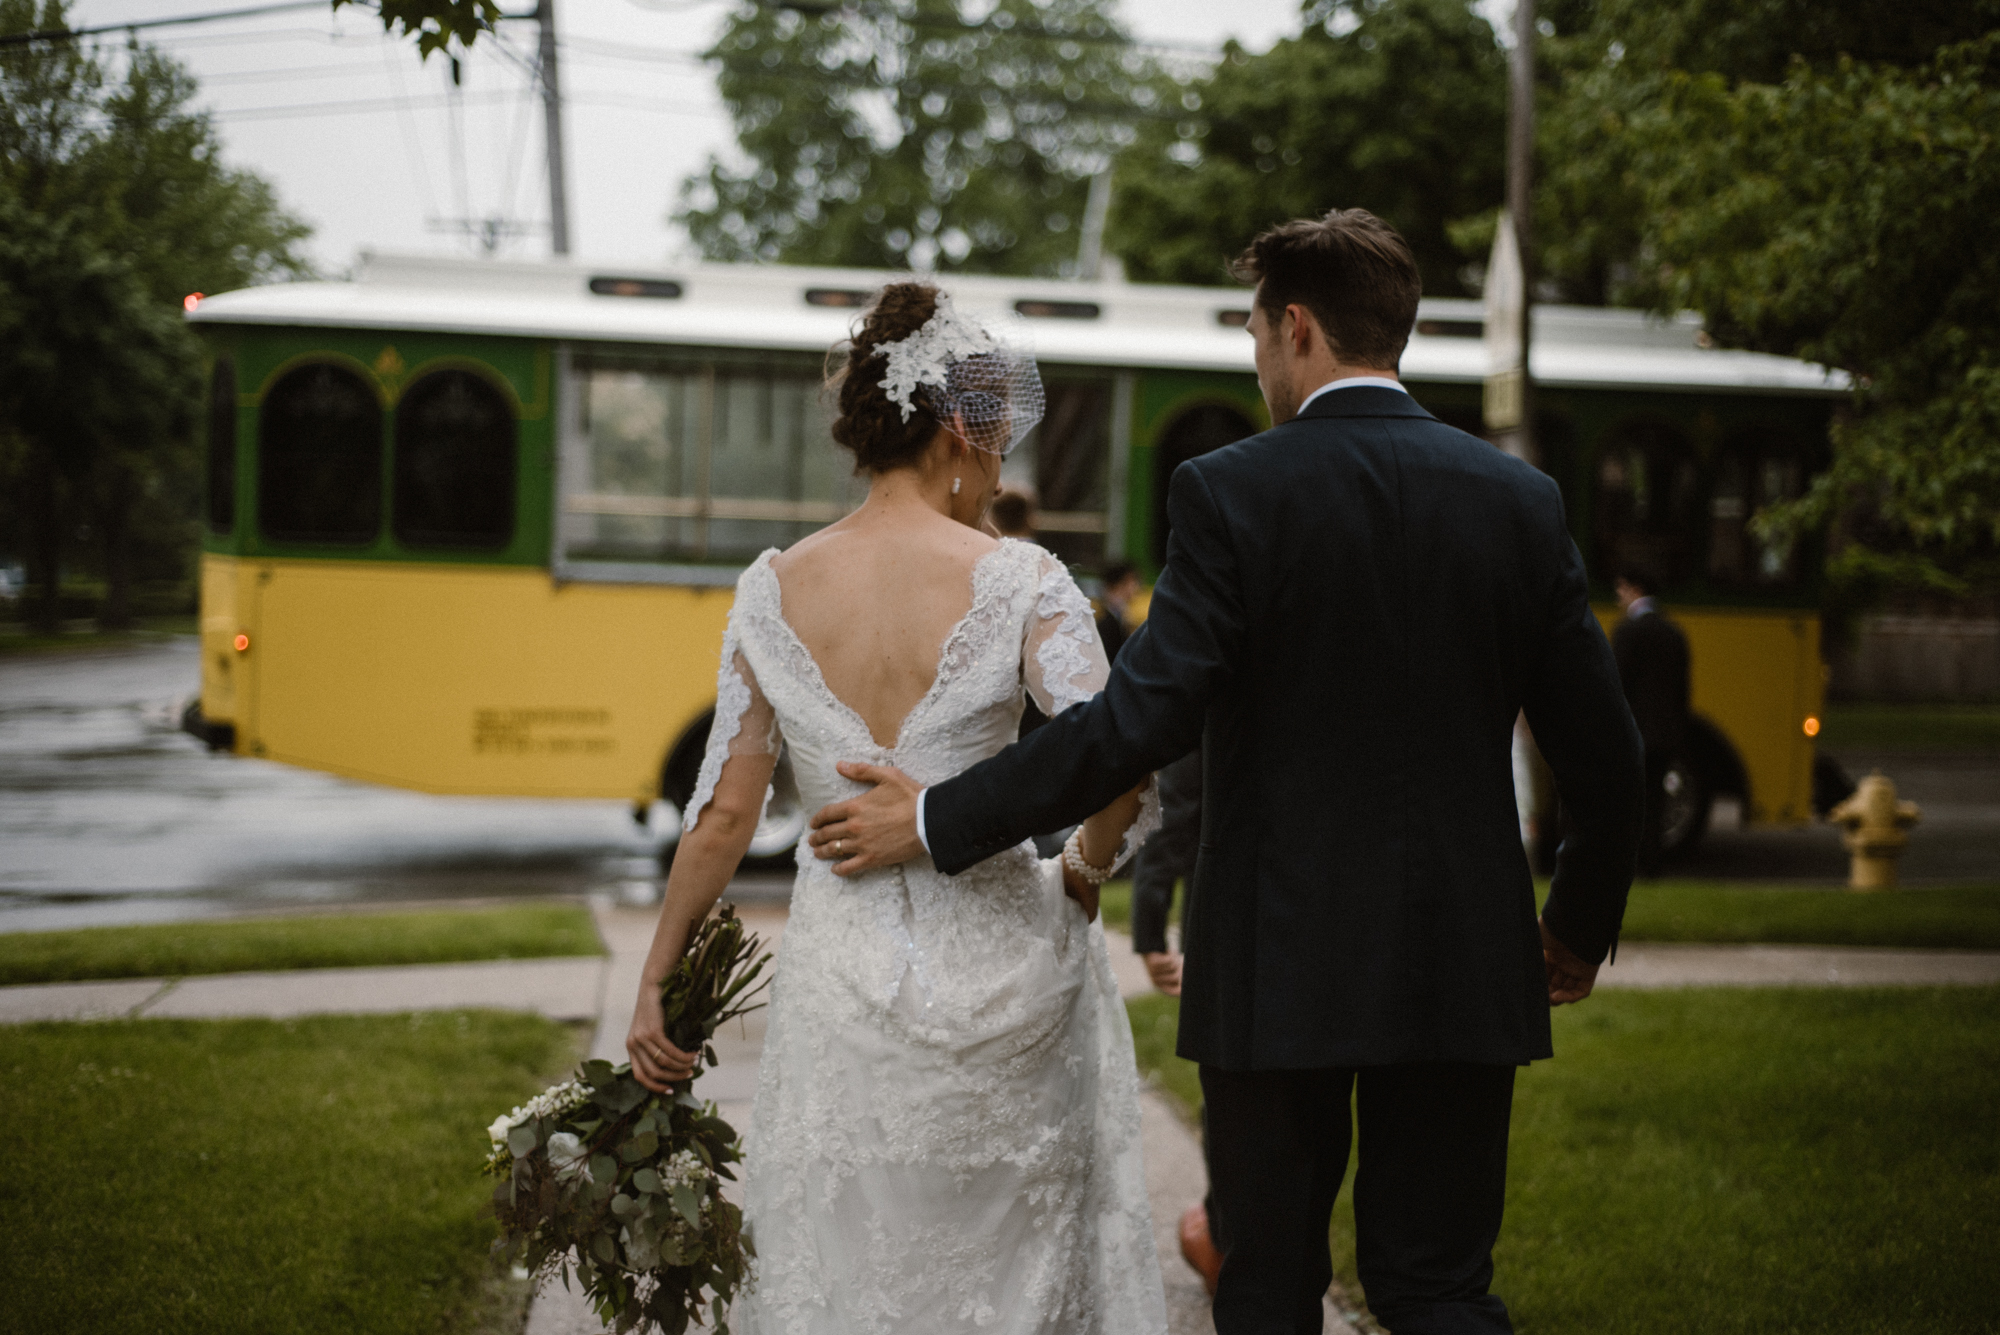 Mairi and Jude - Rainy Backyard Wedding - Intimate Wedding - Fun Reception Photos - Chicago Wedding Photographer - Catholic Wedding - White Sails Creative - Virginia Backyard Wedding Photographer_26.jpg